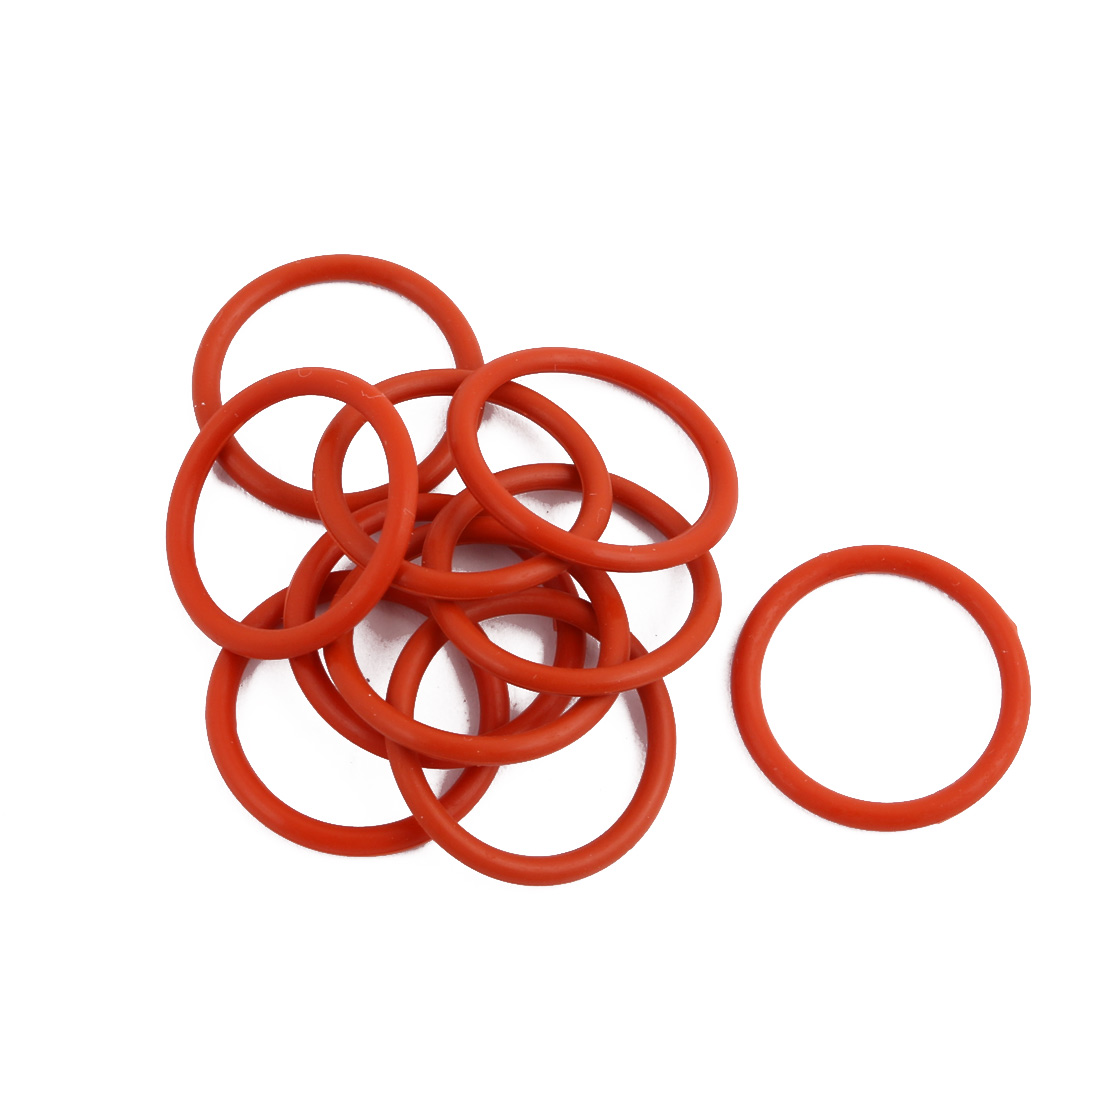 10Pcs Red Round Nitrile Butadiene Rubber NBR O-Ring 20mm OD 1.9mm Width